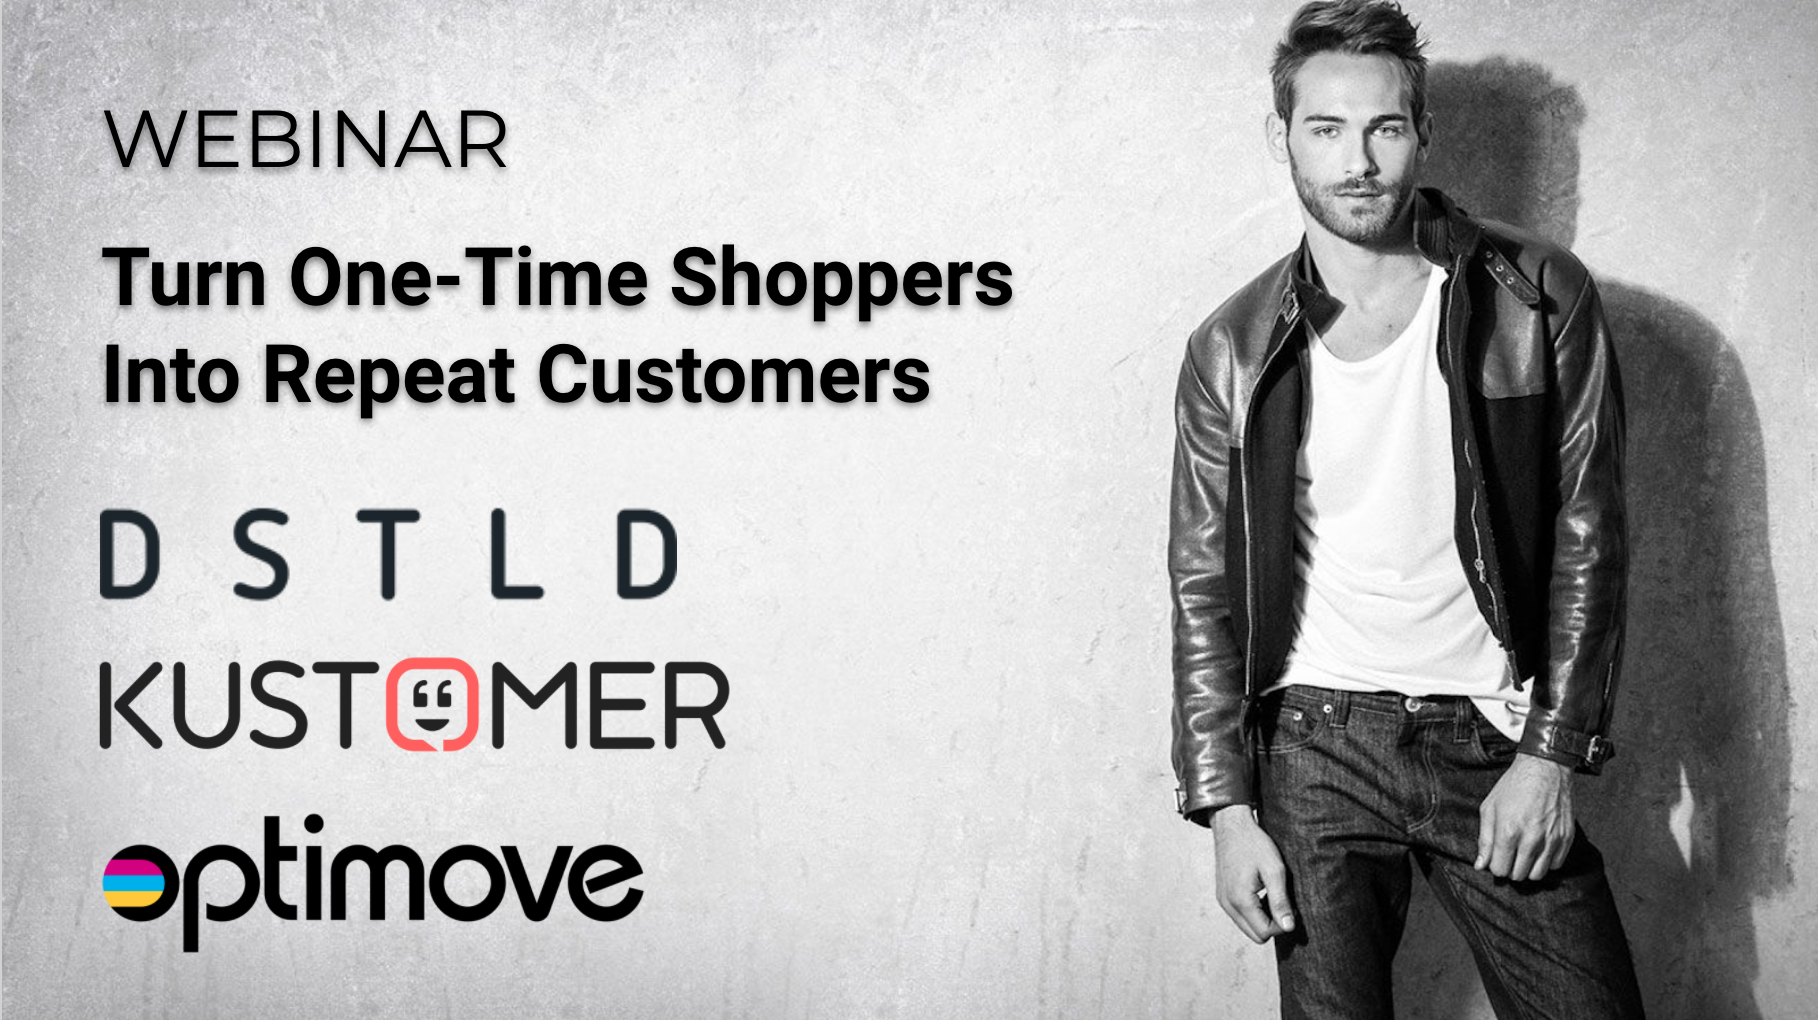 How to Turn One-Time Shoppers Into Repeat Customers